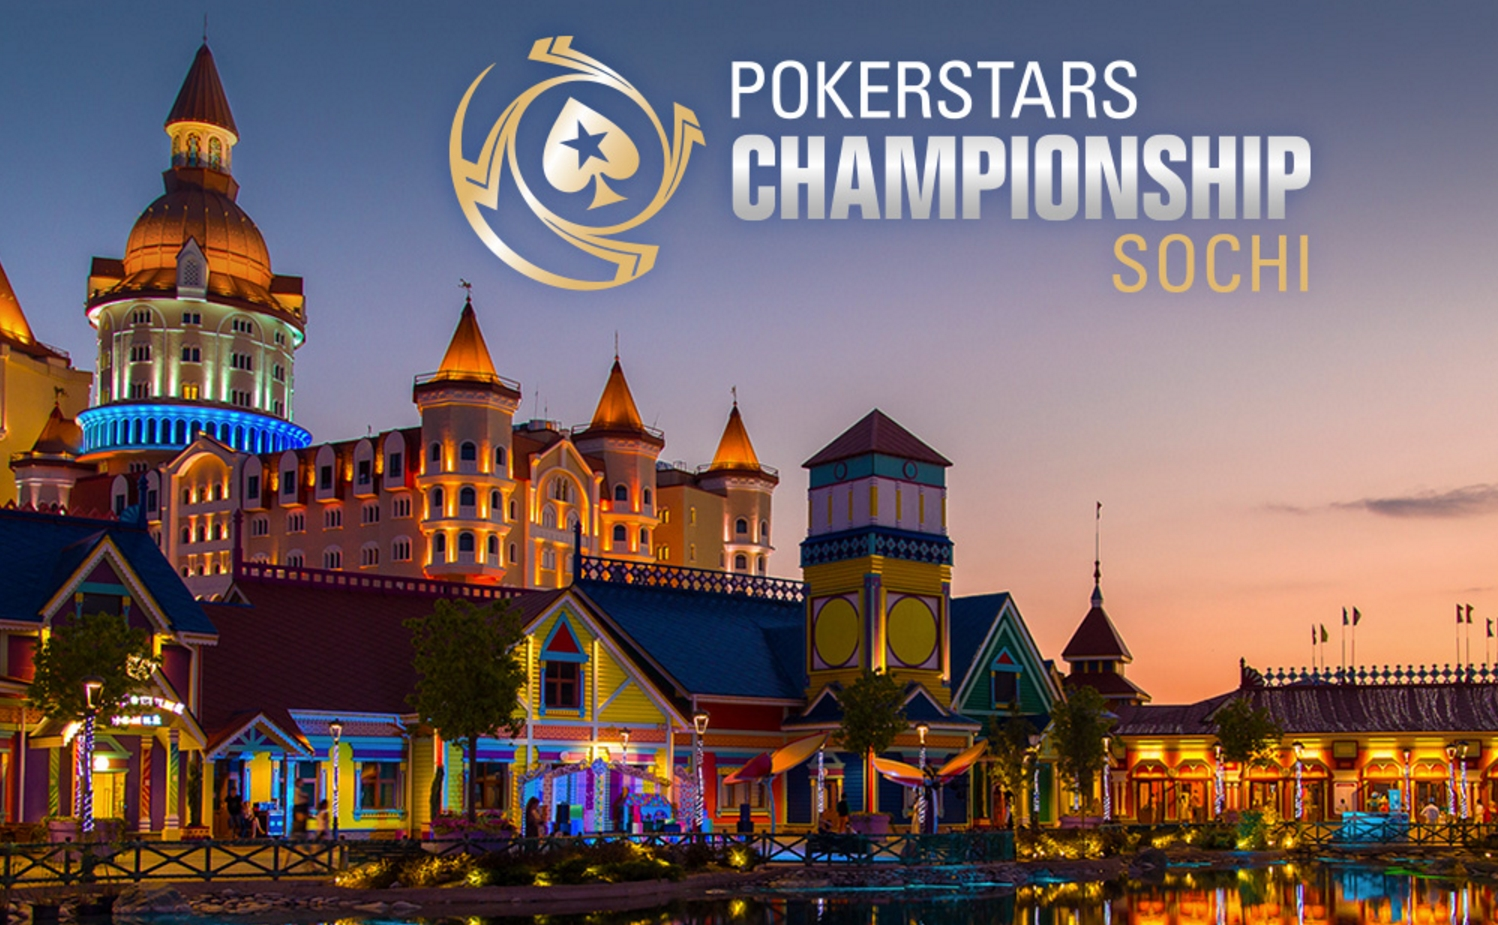 PokerStars Championship Sochi! $2.5 million guaranteed in Main Event!